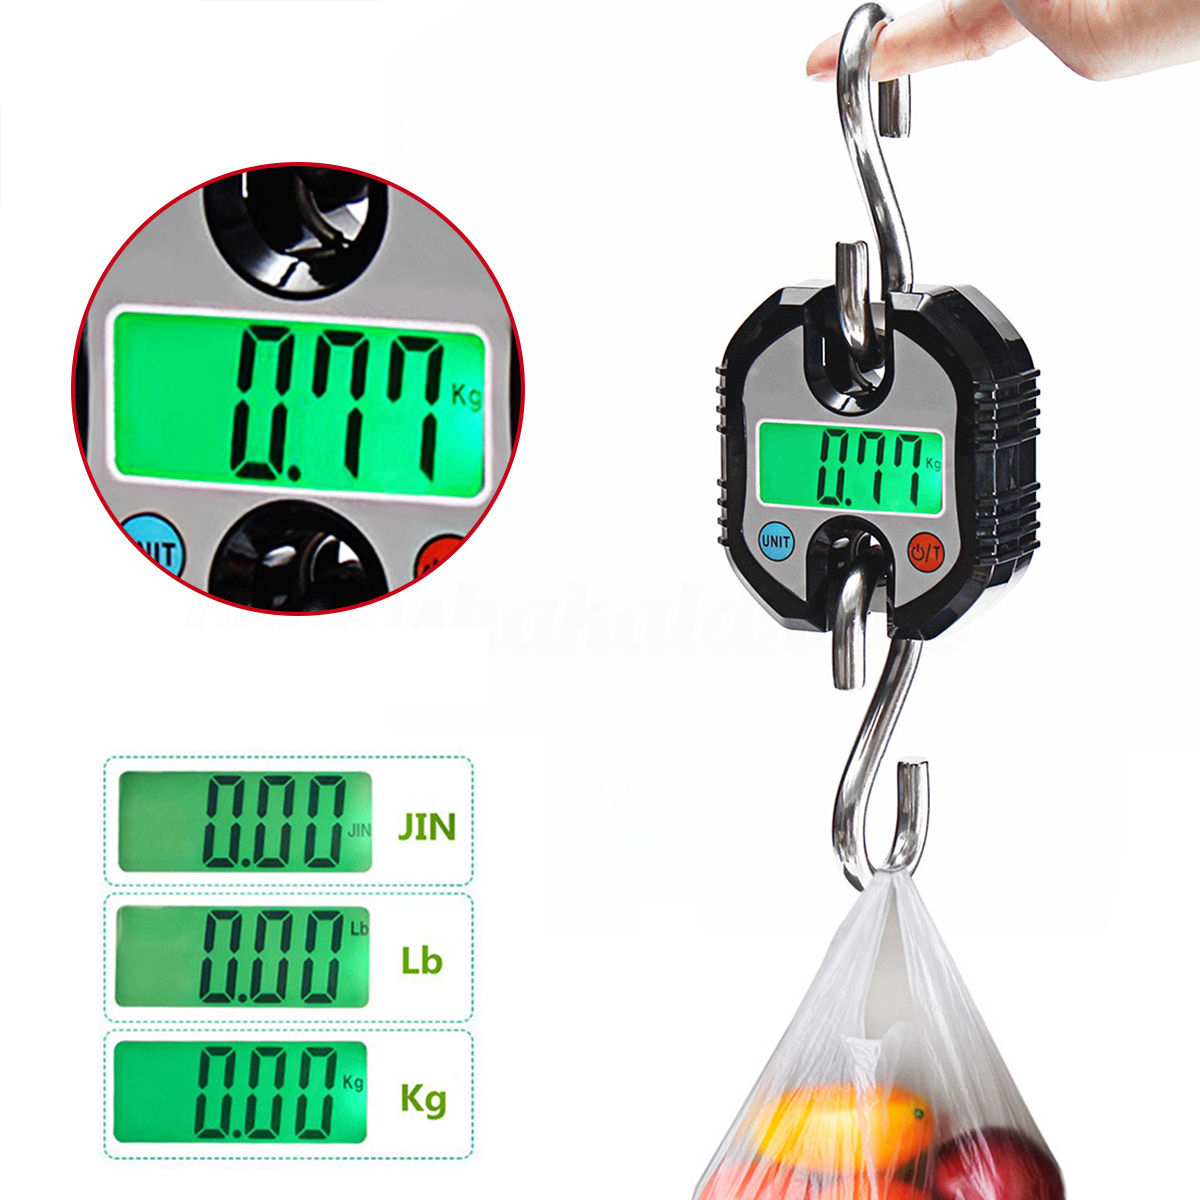 Portable Mini Crane Scale 150kg LCD Digital Weight Electronic Hanging Hook Scales Mayitr portable mini crane scale 150kg lcd digital weight electronic hanging hook scales mayitr